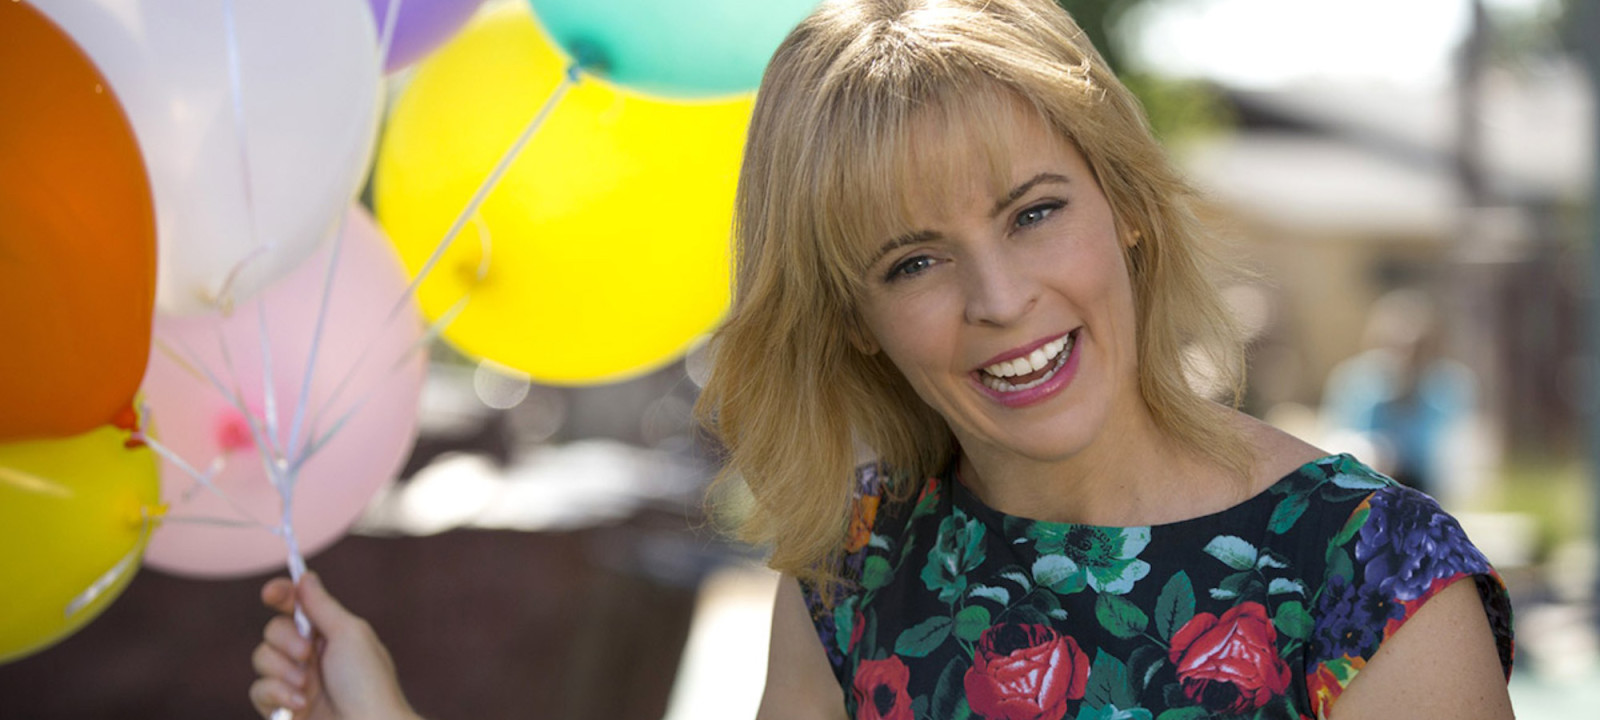 Lady Dynamite starring Maria Bamford scheduled to stream on Netflix.